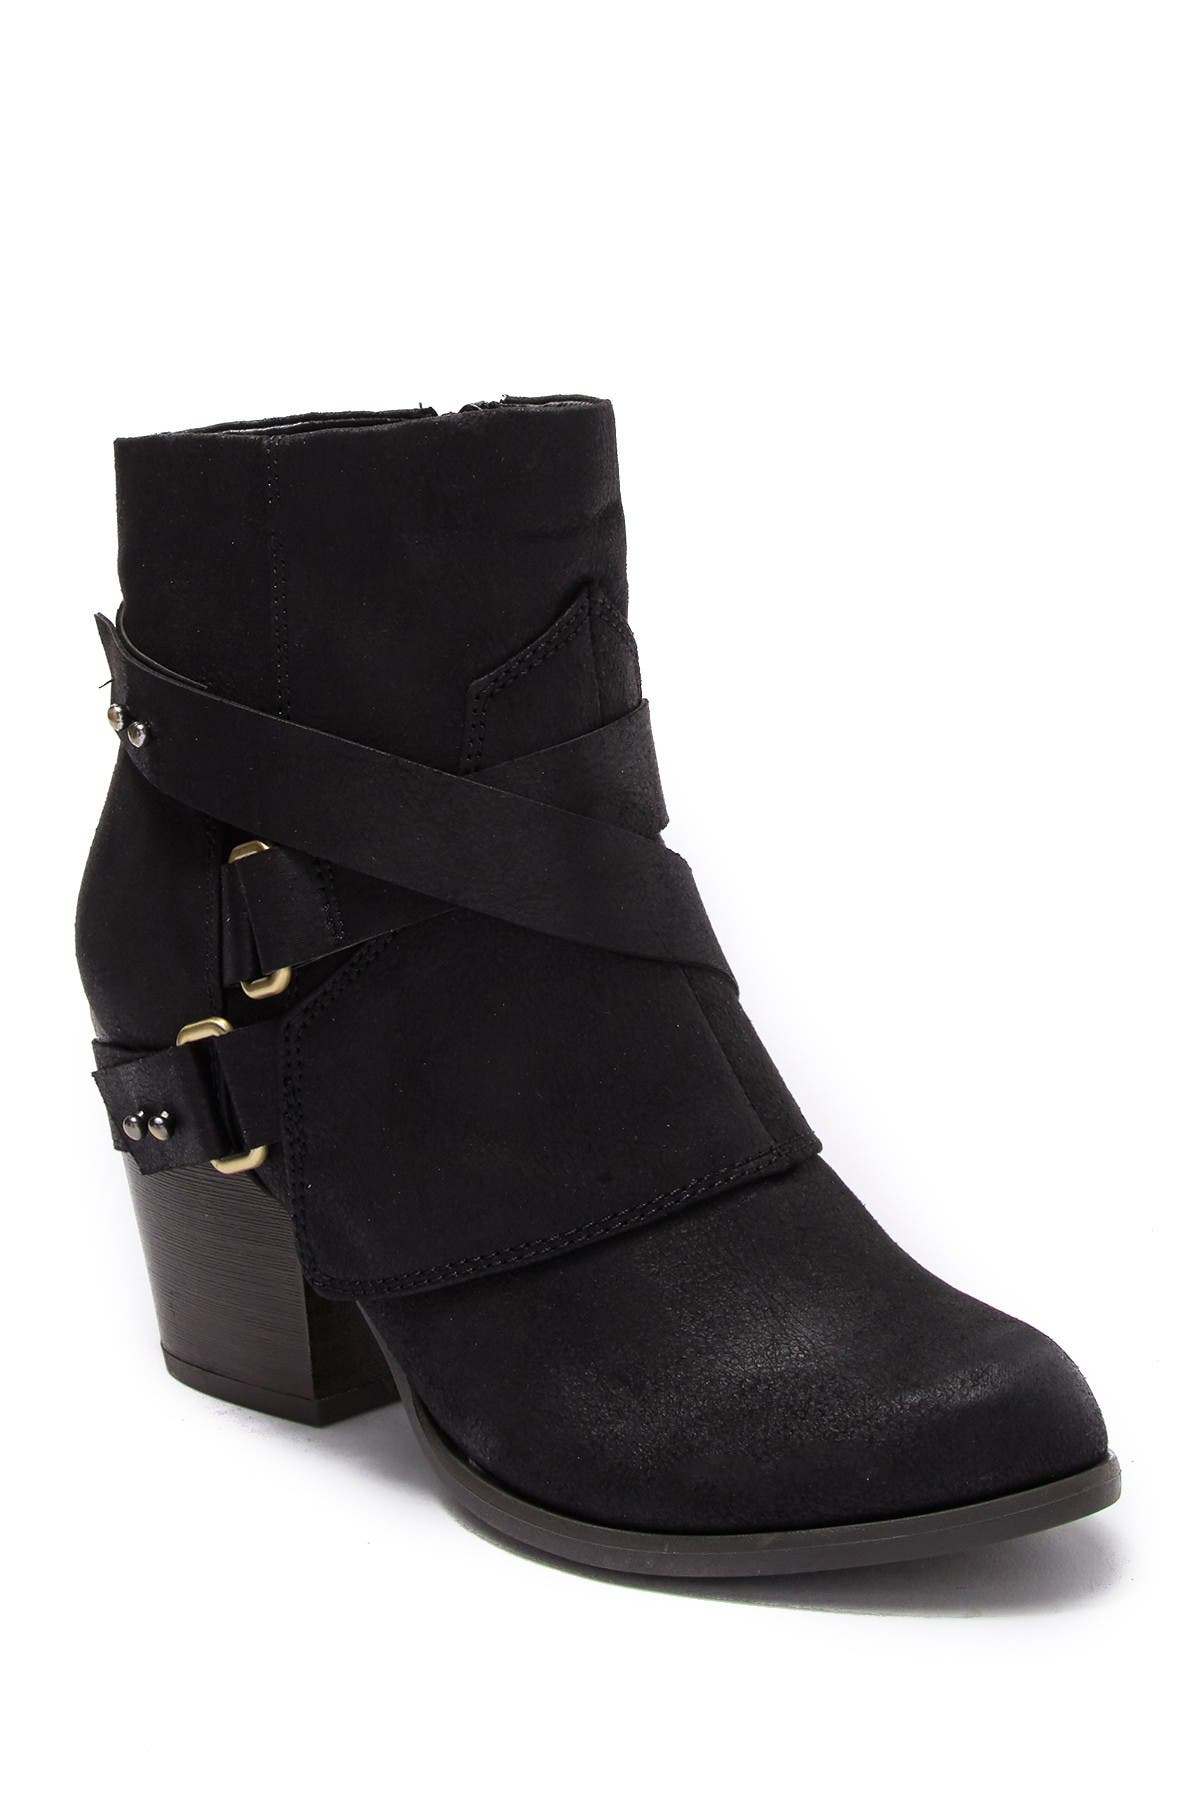 Image of Fergalicious Lethal Booties